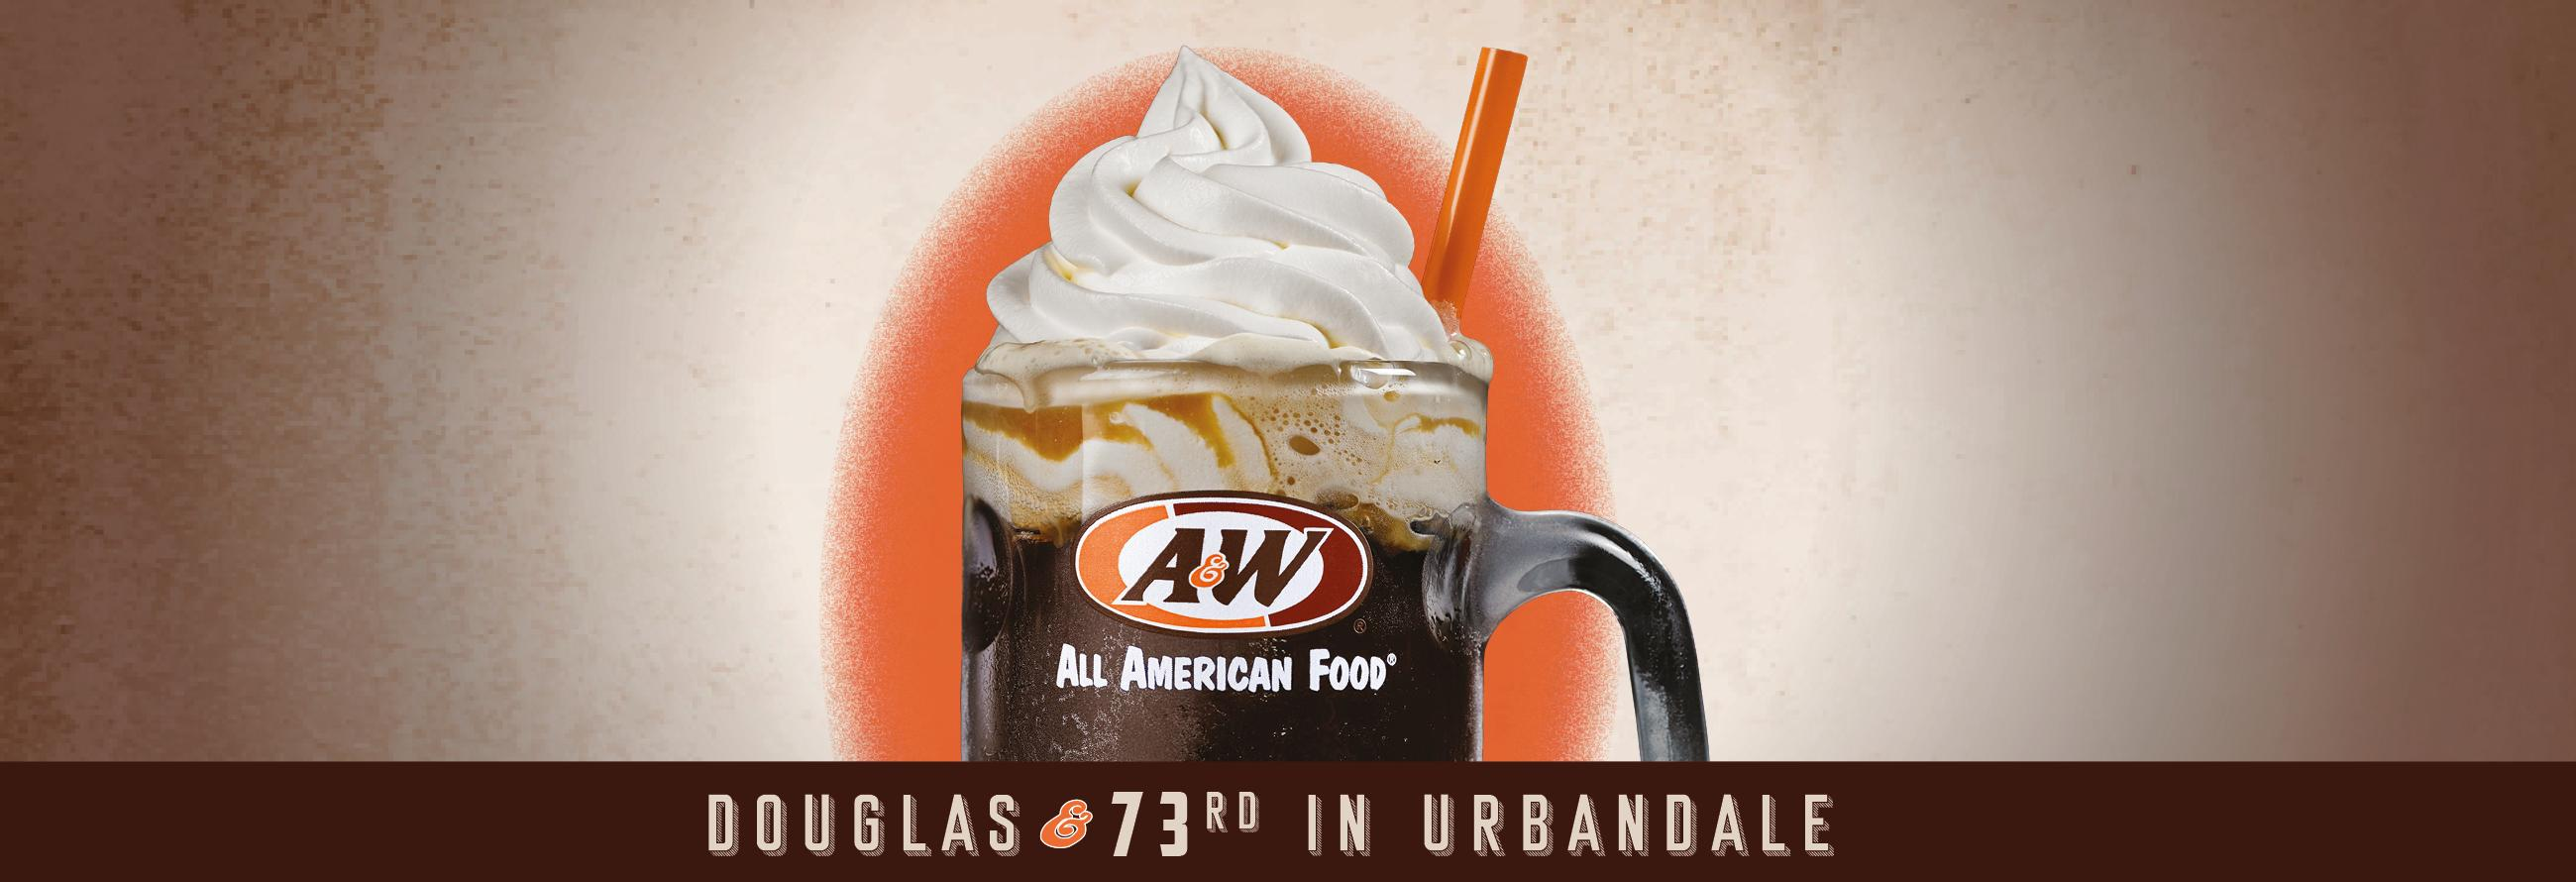 A&W all American food long john silvers fast food root beer floats Urbandale Iowa